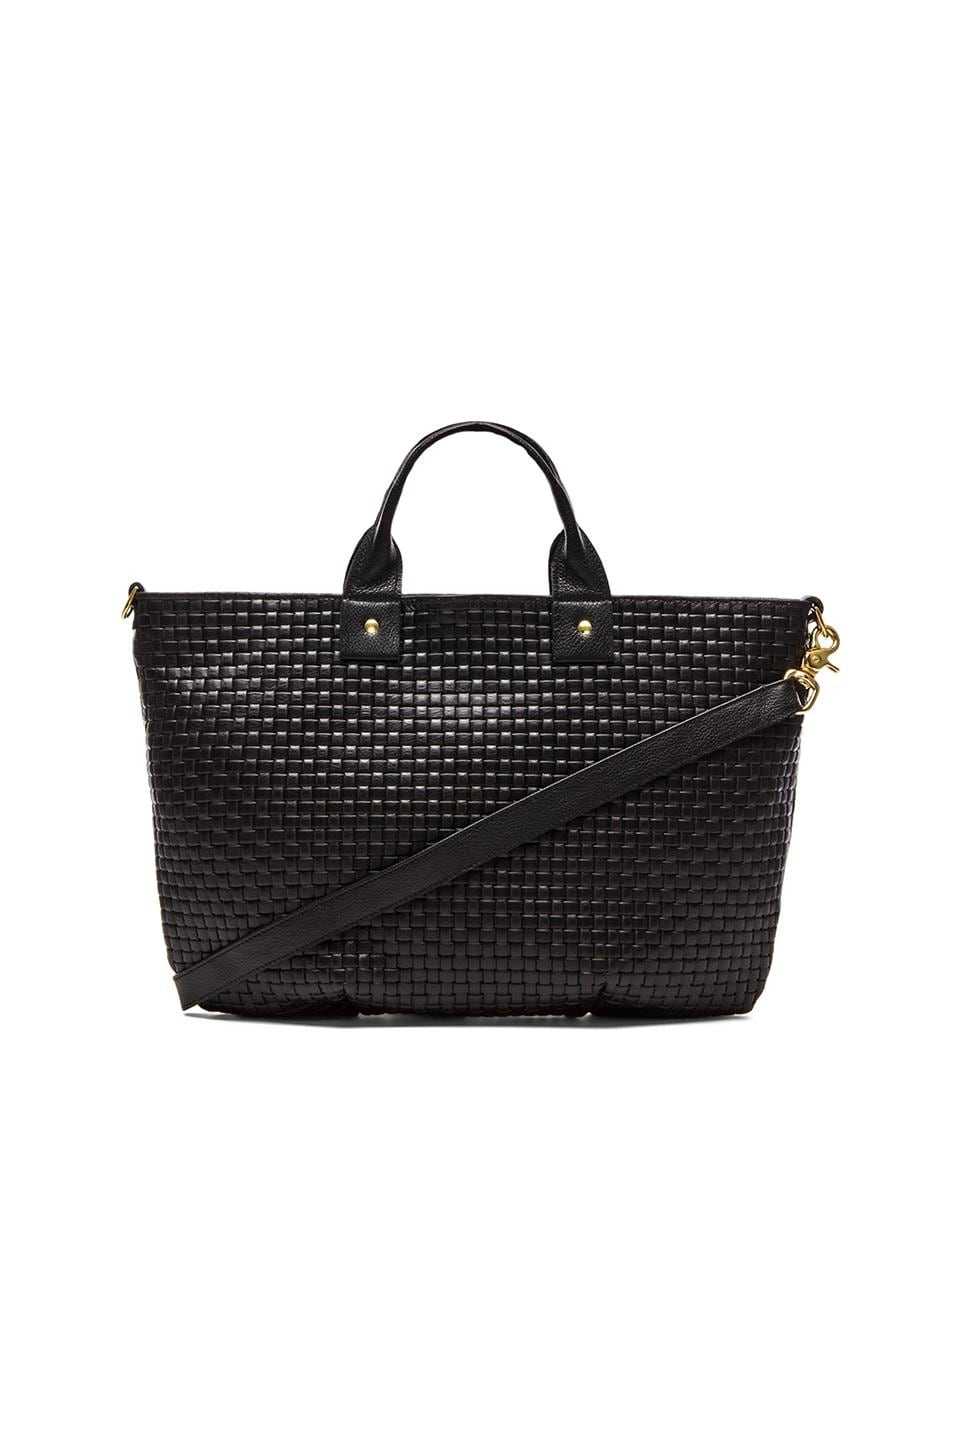 Clare V. Messenger Weekend in Black Basketweave